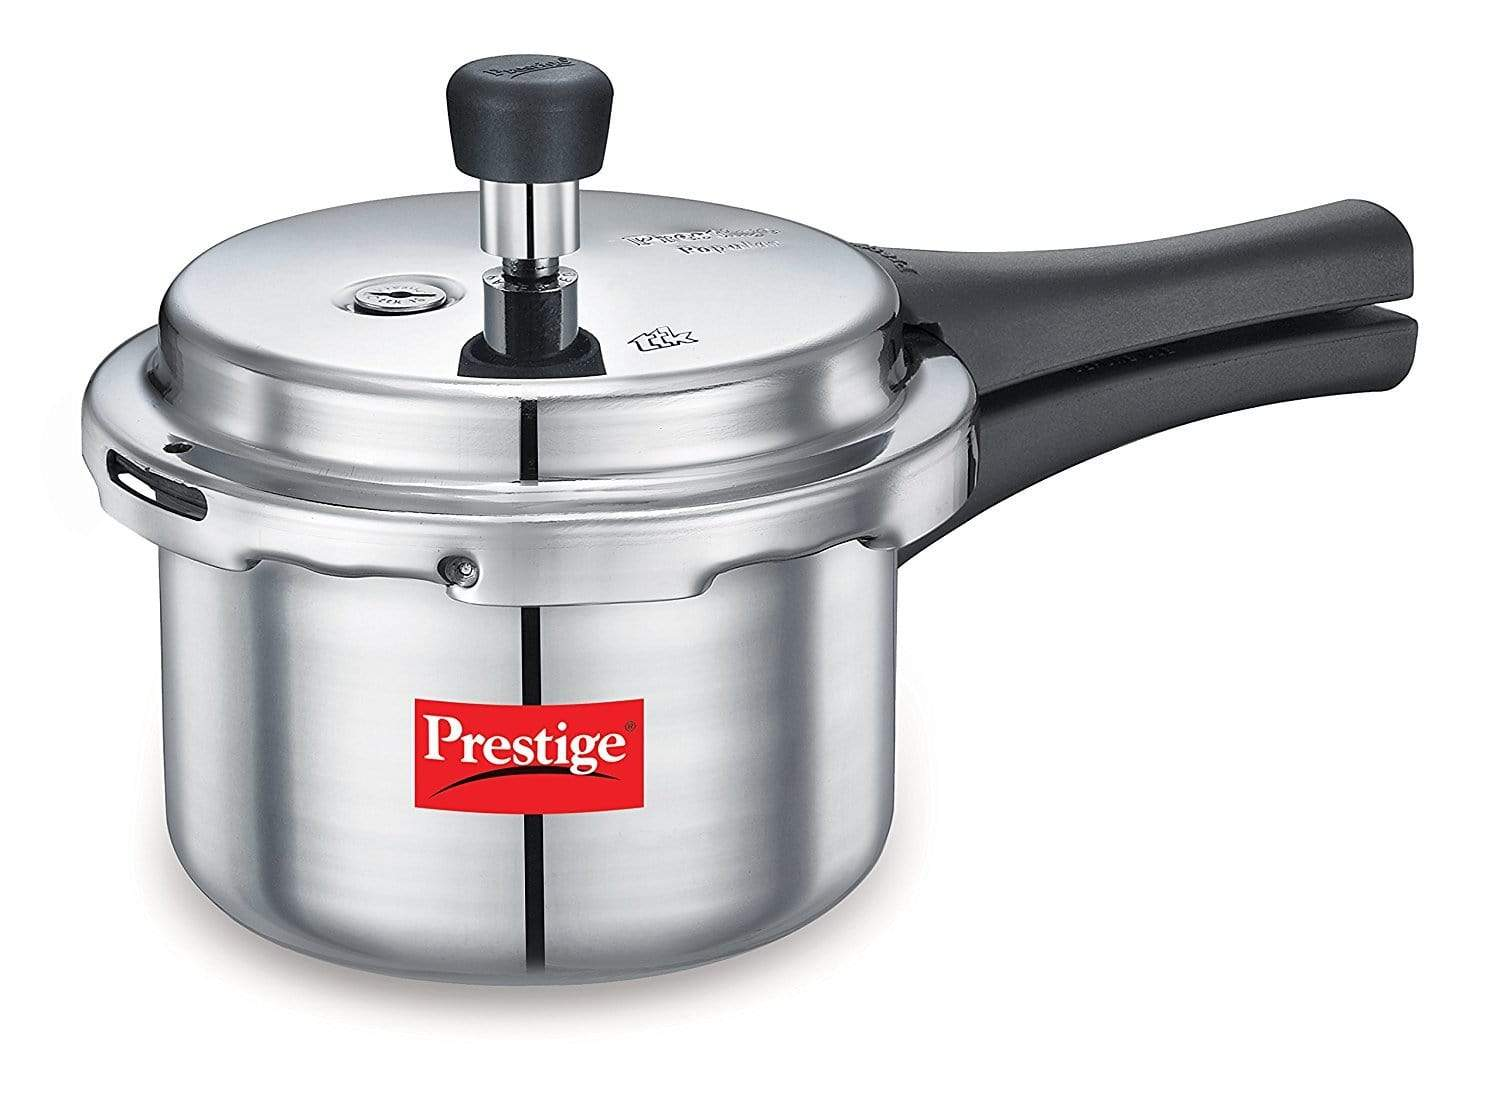 Prestige Popular Aluminium Pressure Cooker - KITCHEN MART